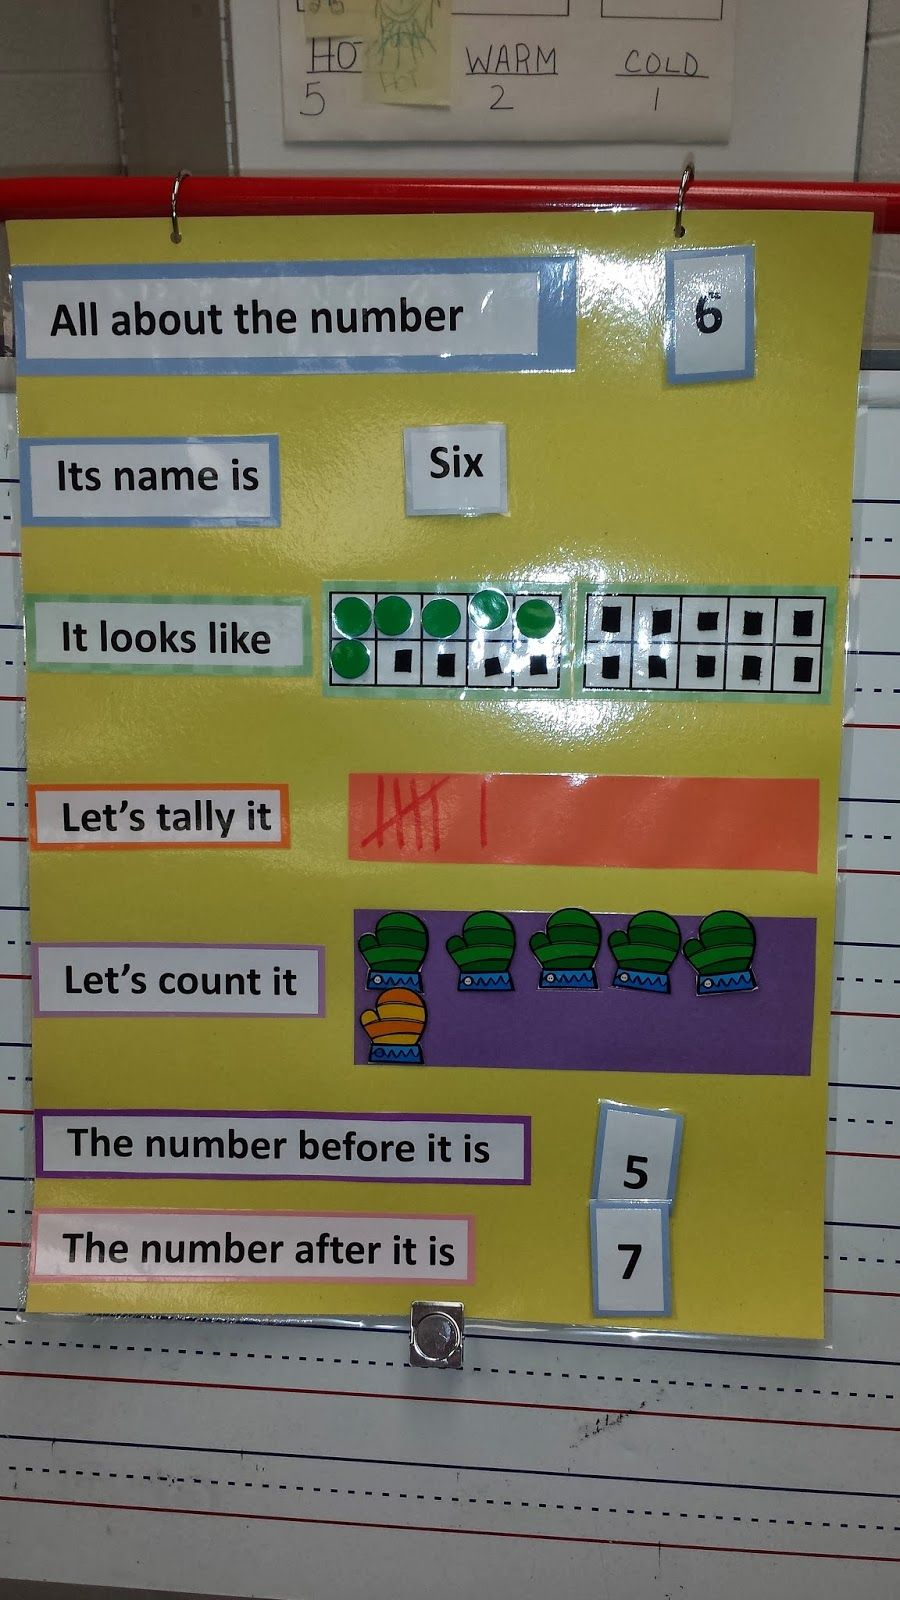 Mrs. P's Specialties!: All about numbers